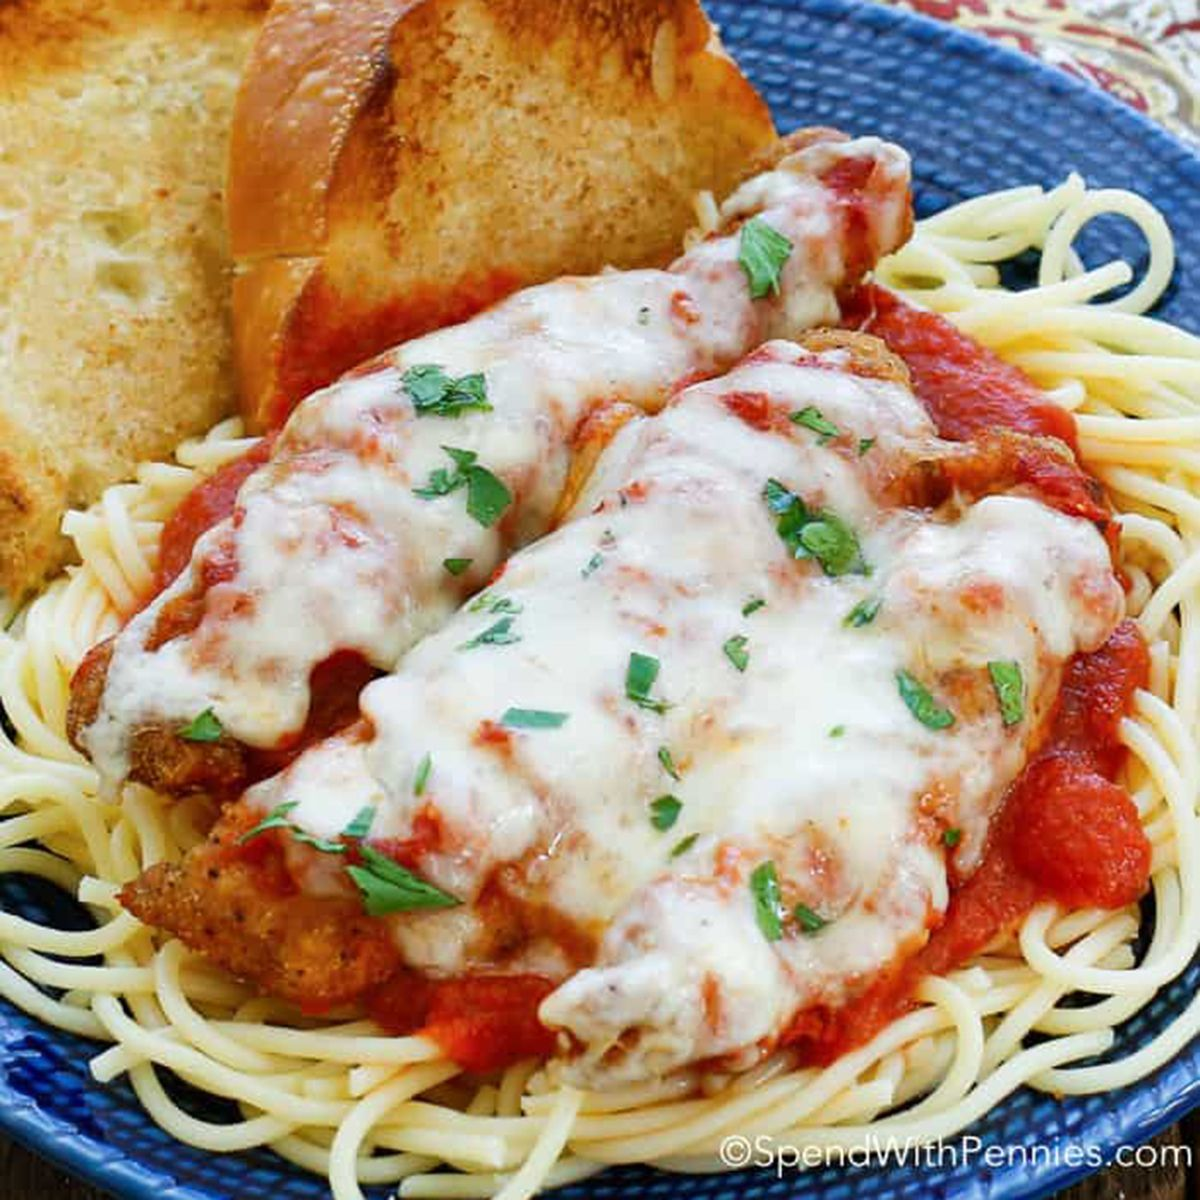 11 Things To Do With Frozen Chicken Tenders In 2020 Chicken Parmesan Recipe Easy Chicken Parmesan Recipes Chicken Parmesan